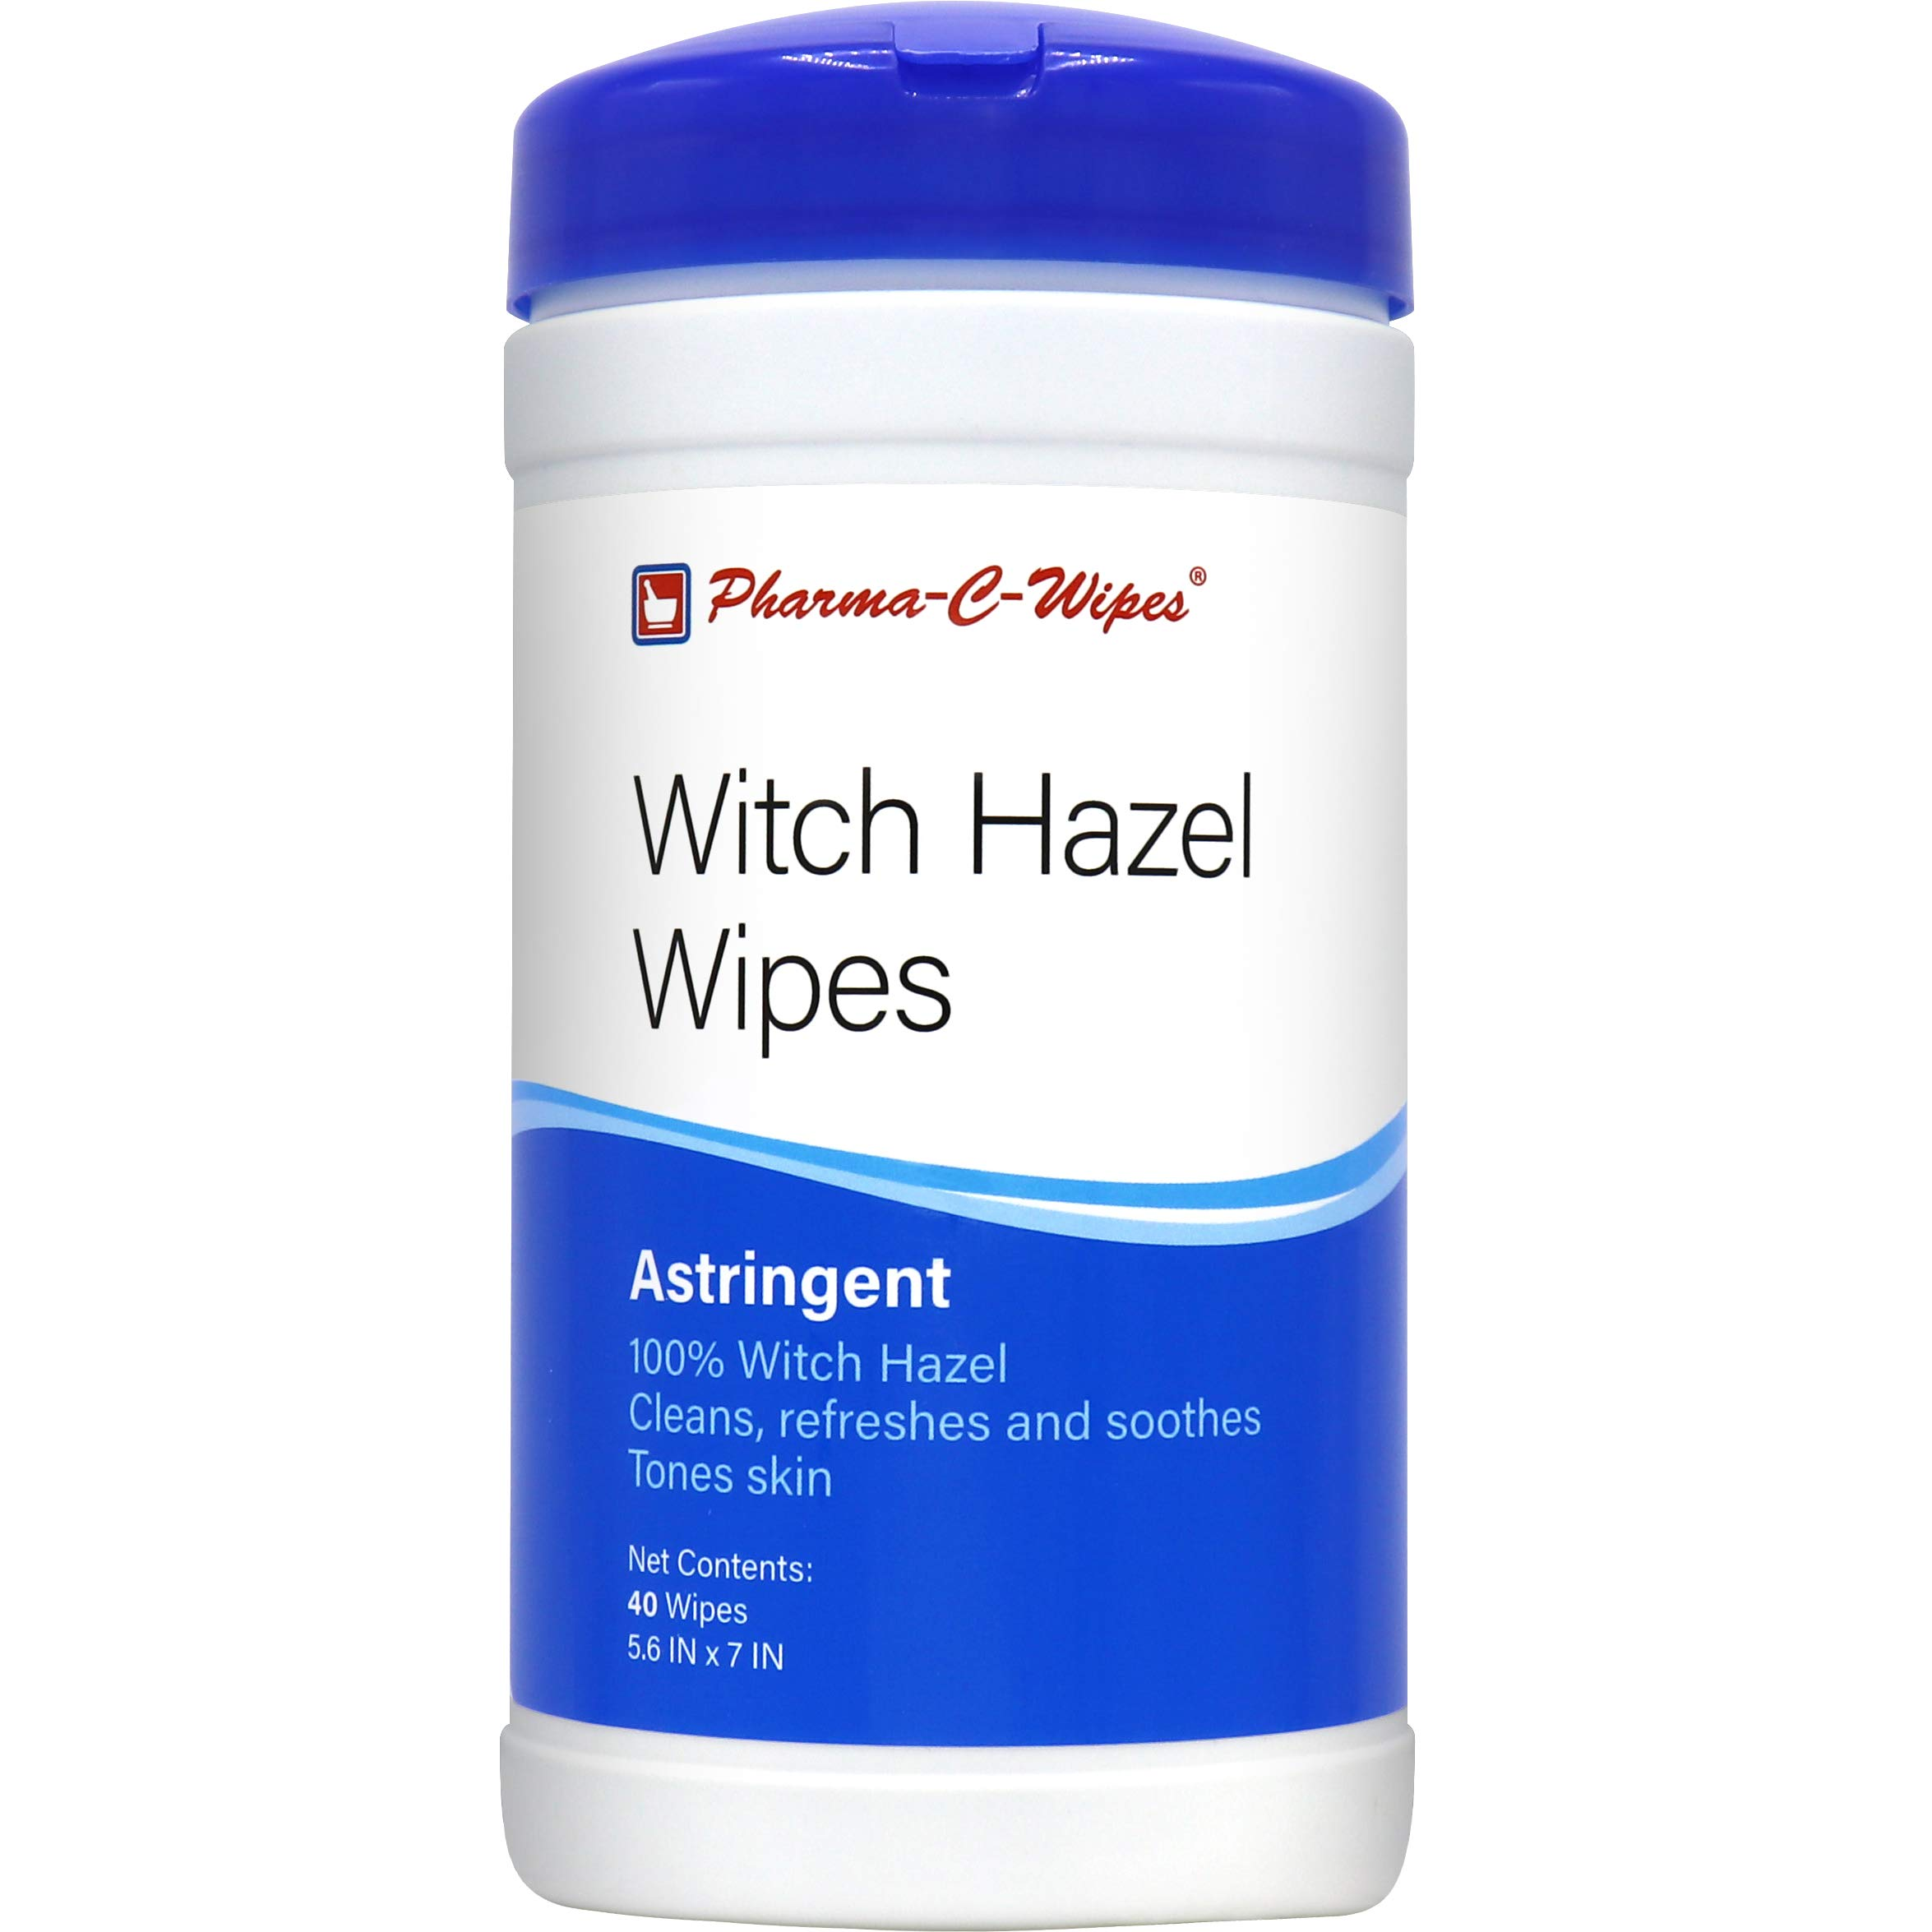 100% Witch Hazel wipes (1 case of 6 canisters) Toner & Astringent Cleansing Cloths